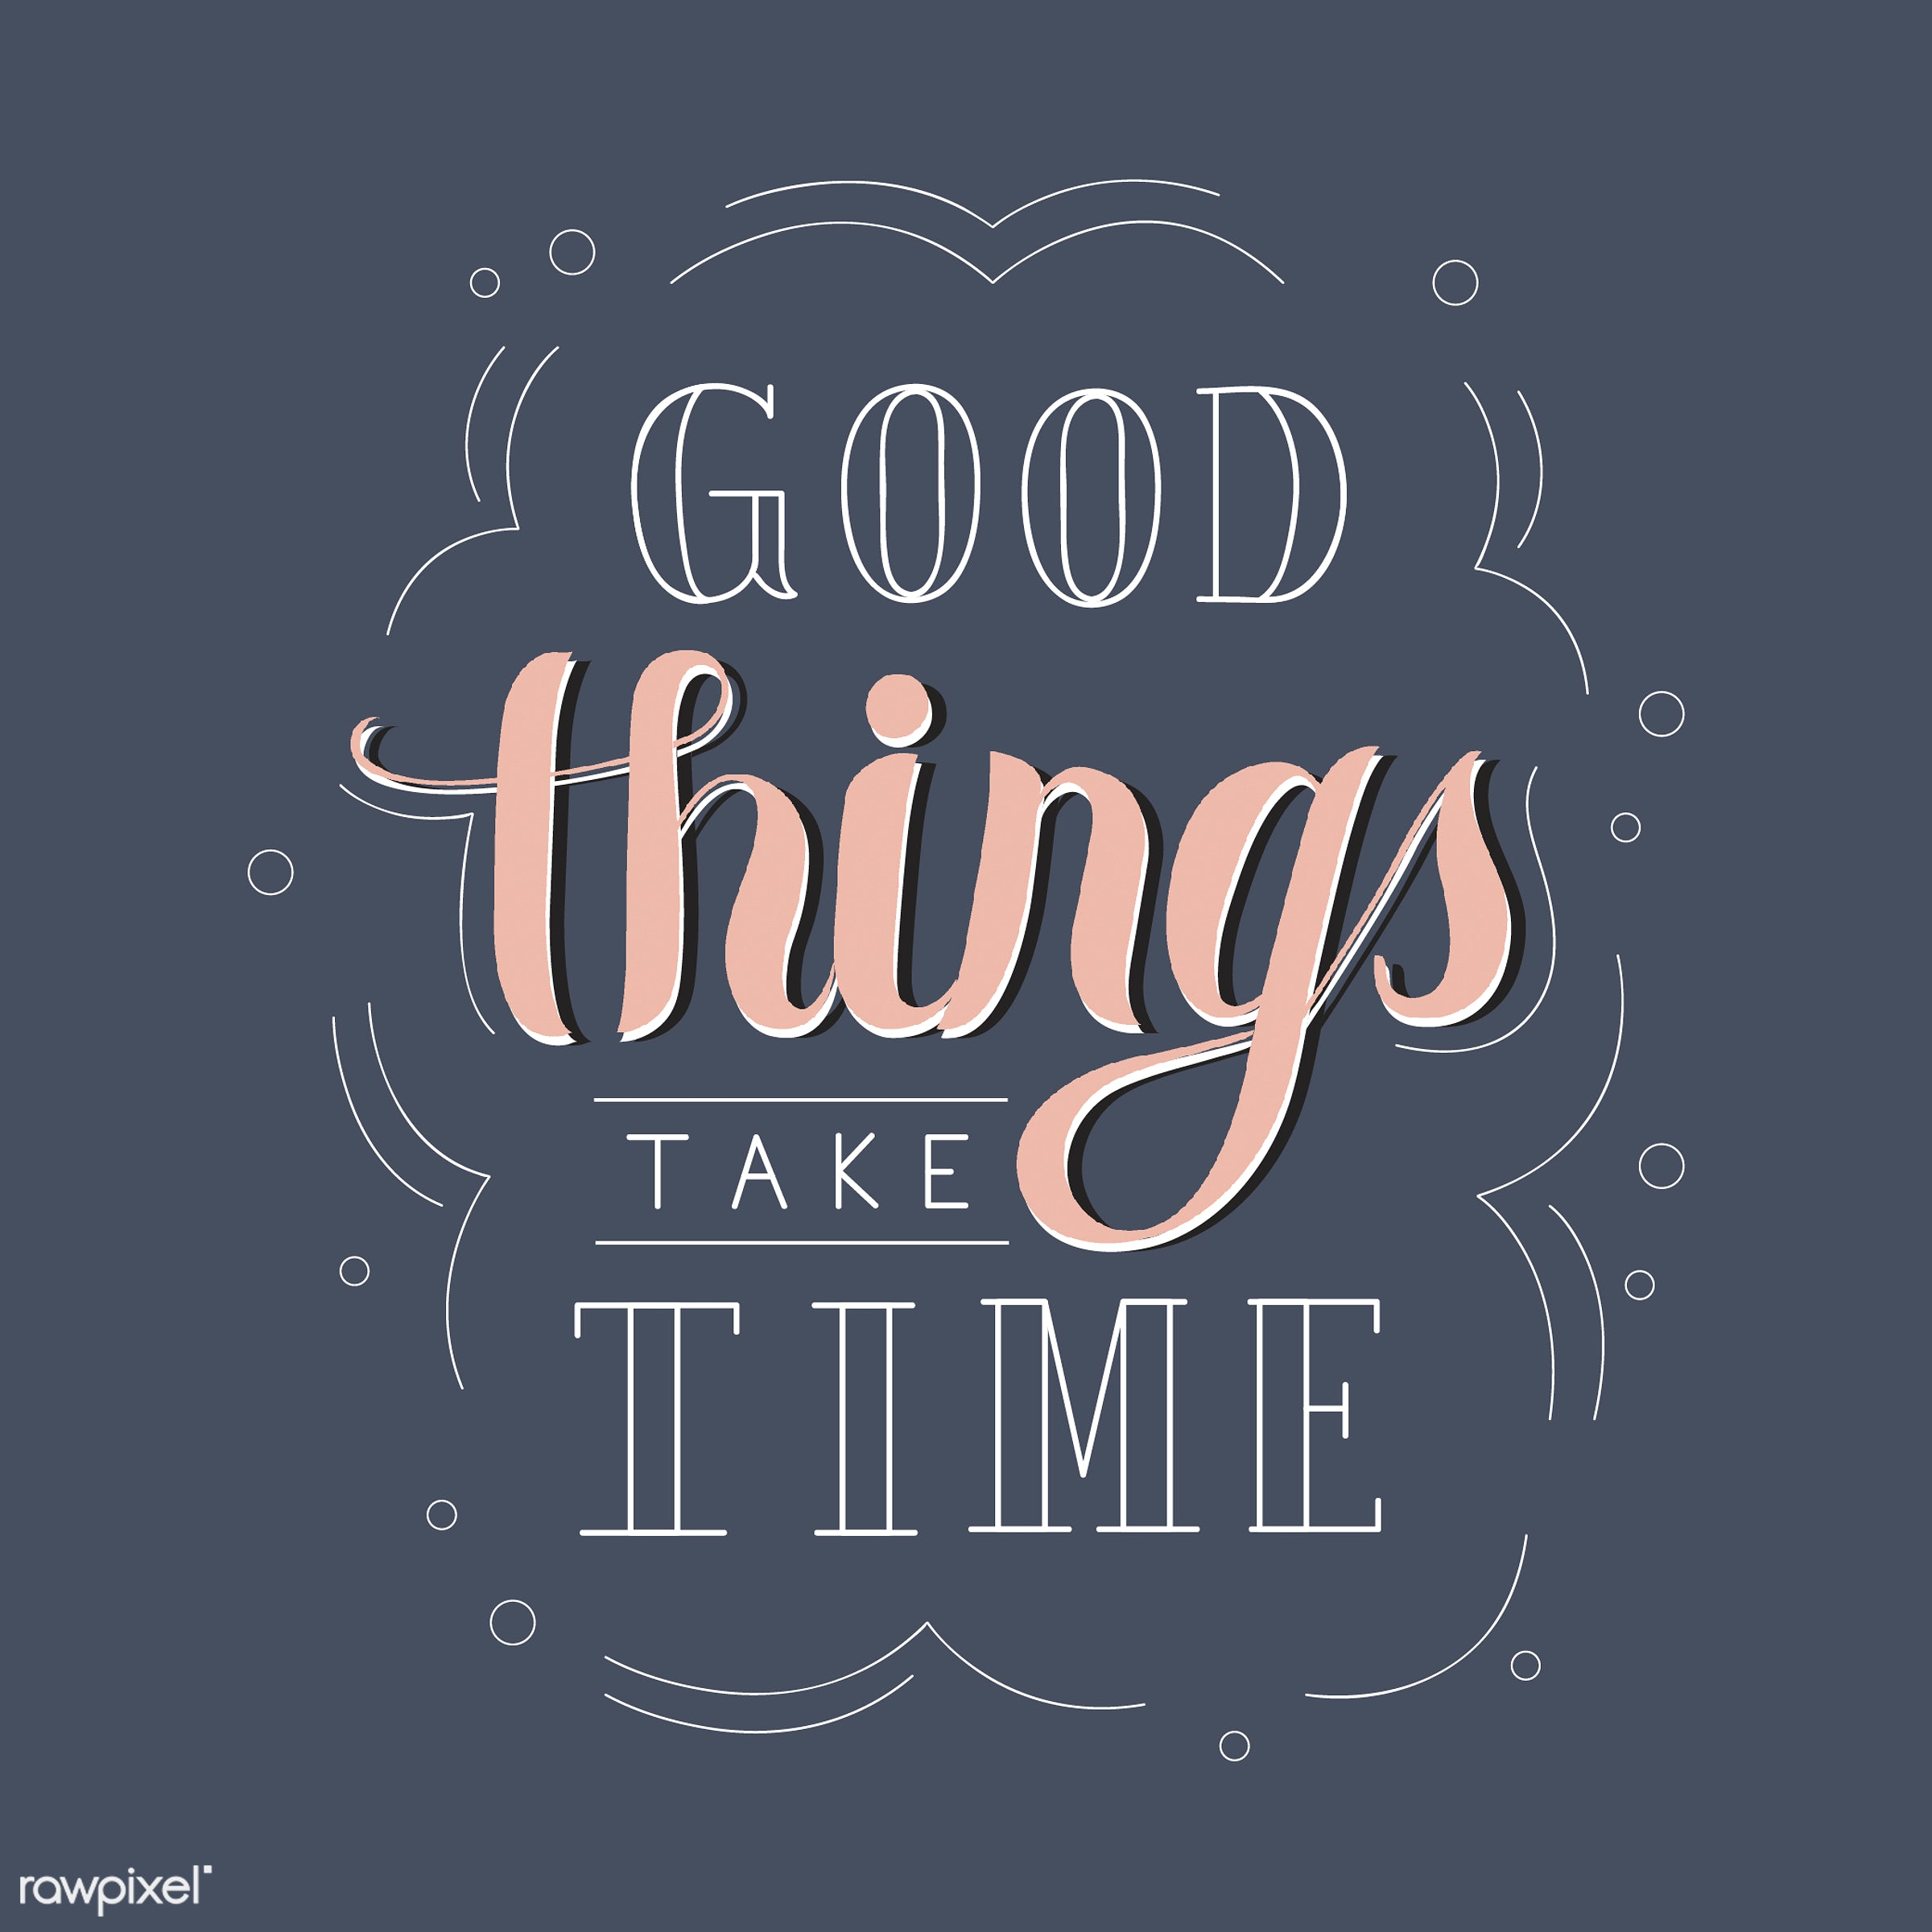 Good things take time typography design illustration - artwork, attitude, calligraphy, cliche, concept, deep, design,...